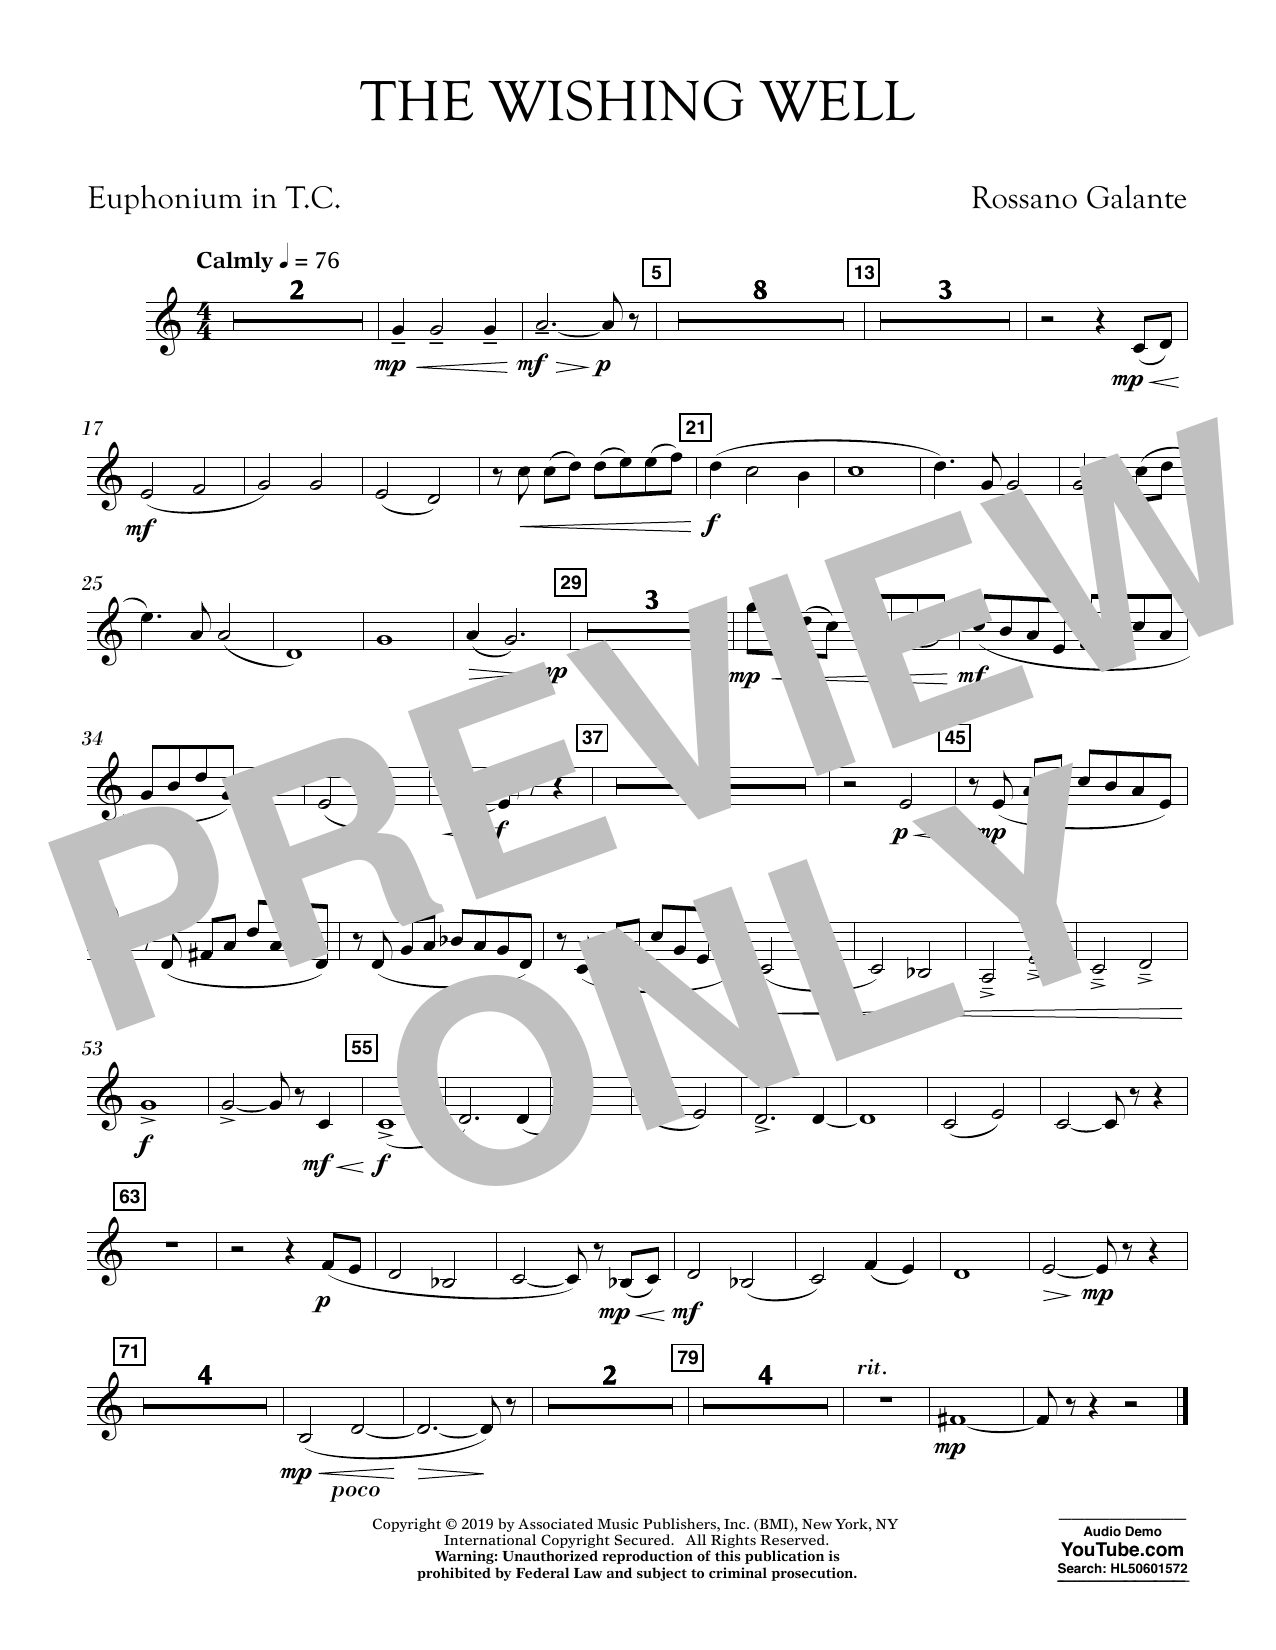 Rossano Galante The Wishing Well - Euphonium in Treble Clef sheet music preview music notes and score for Concert Band including 1 page(s)